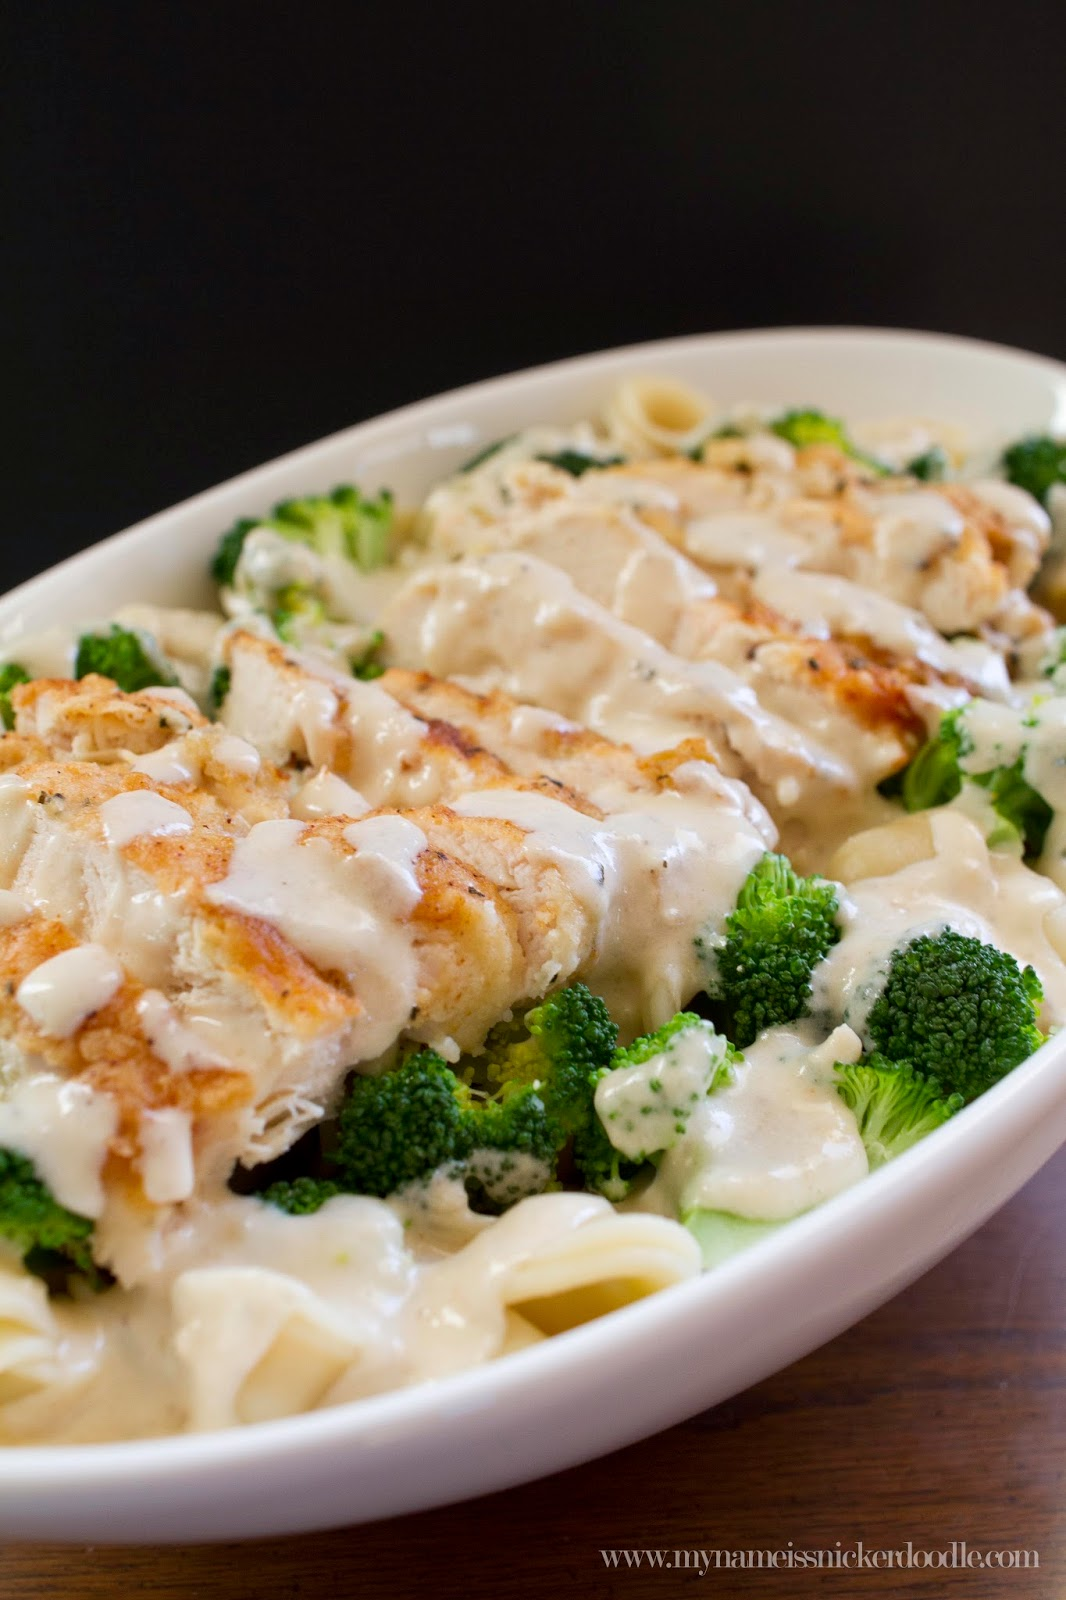 My Name Is Snickerdoodle Creamy Garlic Chicken And Broccoli Pasta